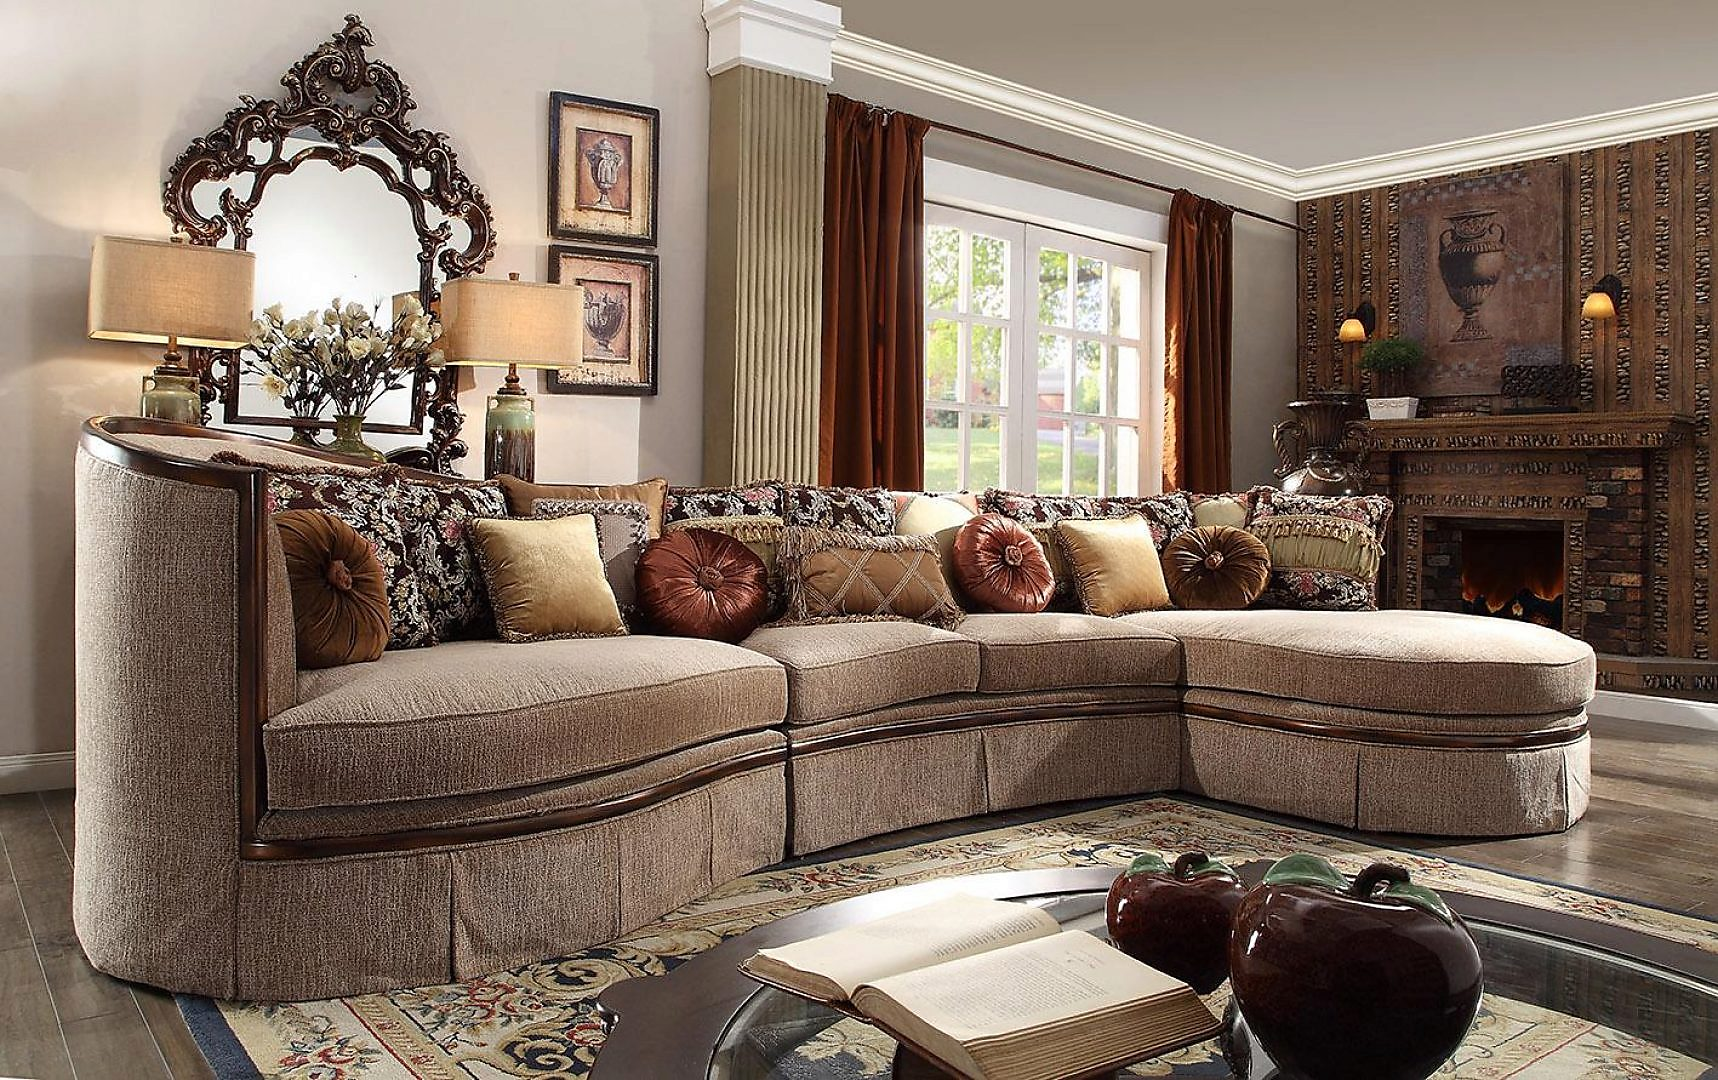 Traditional HD-1627 Sectional Sofa and Chair Living Room Set 3Pcs by Homey Design